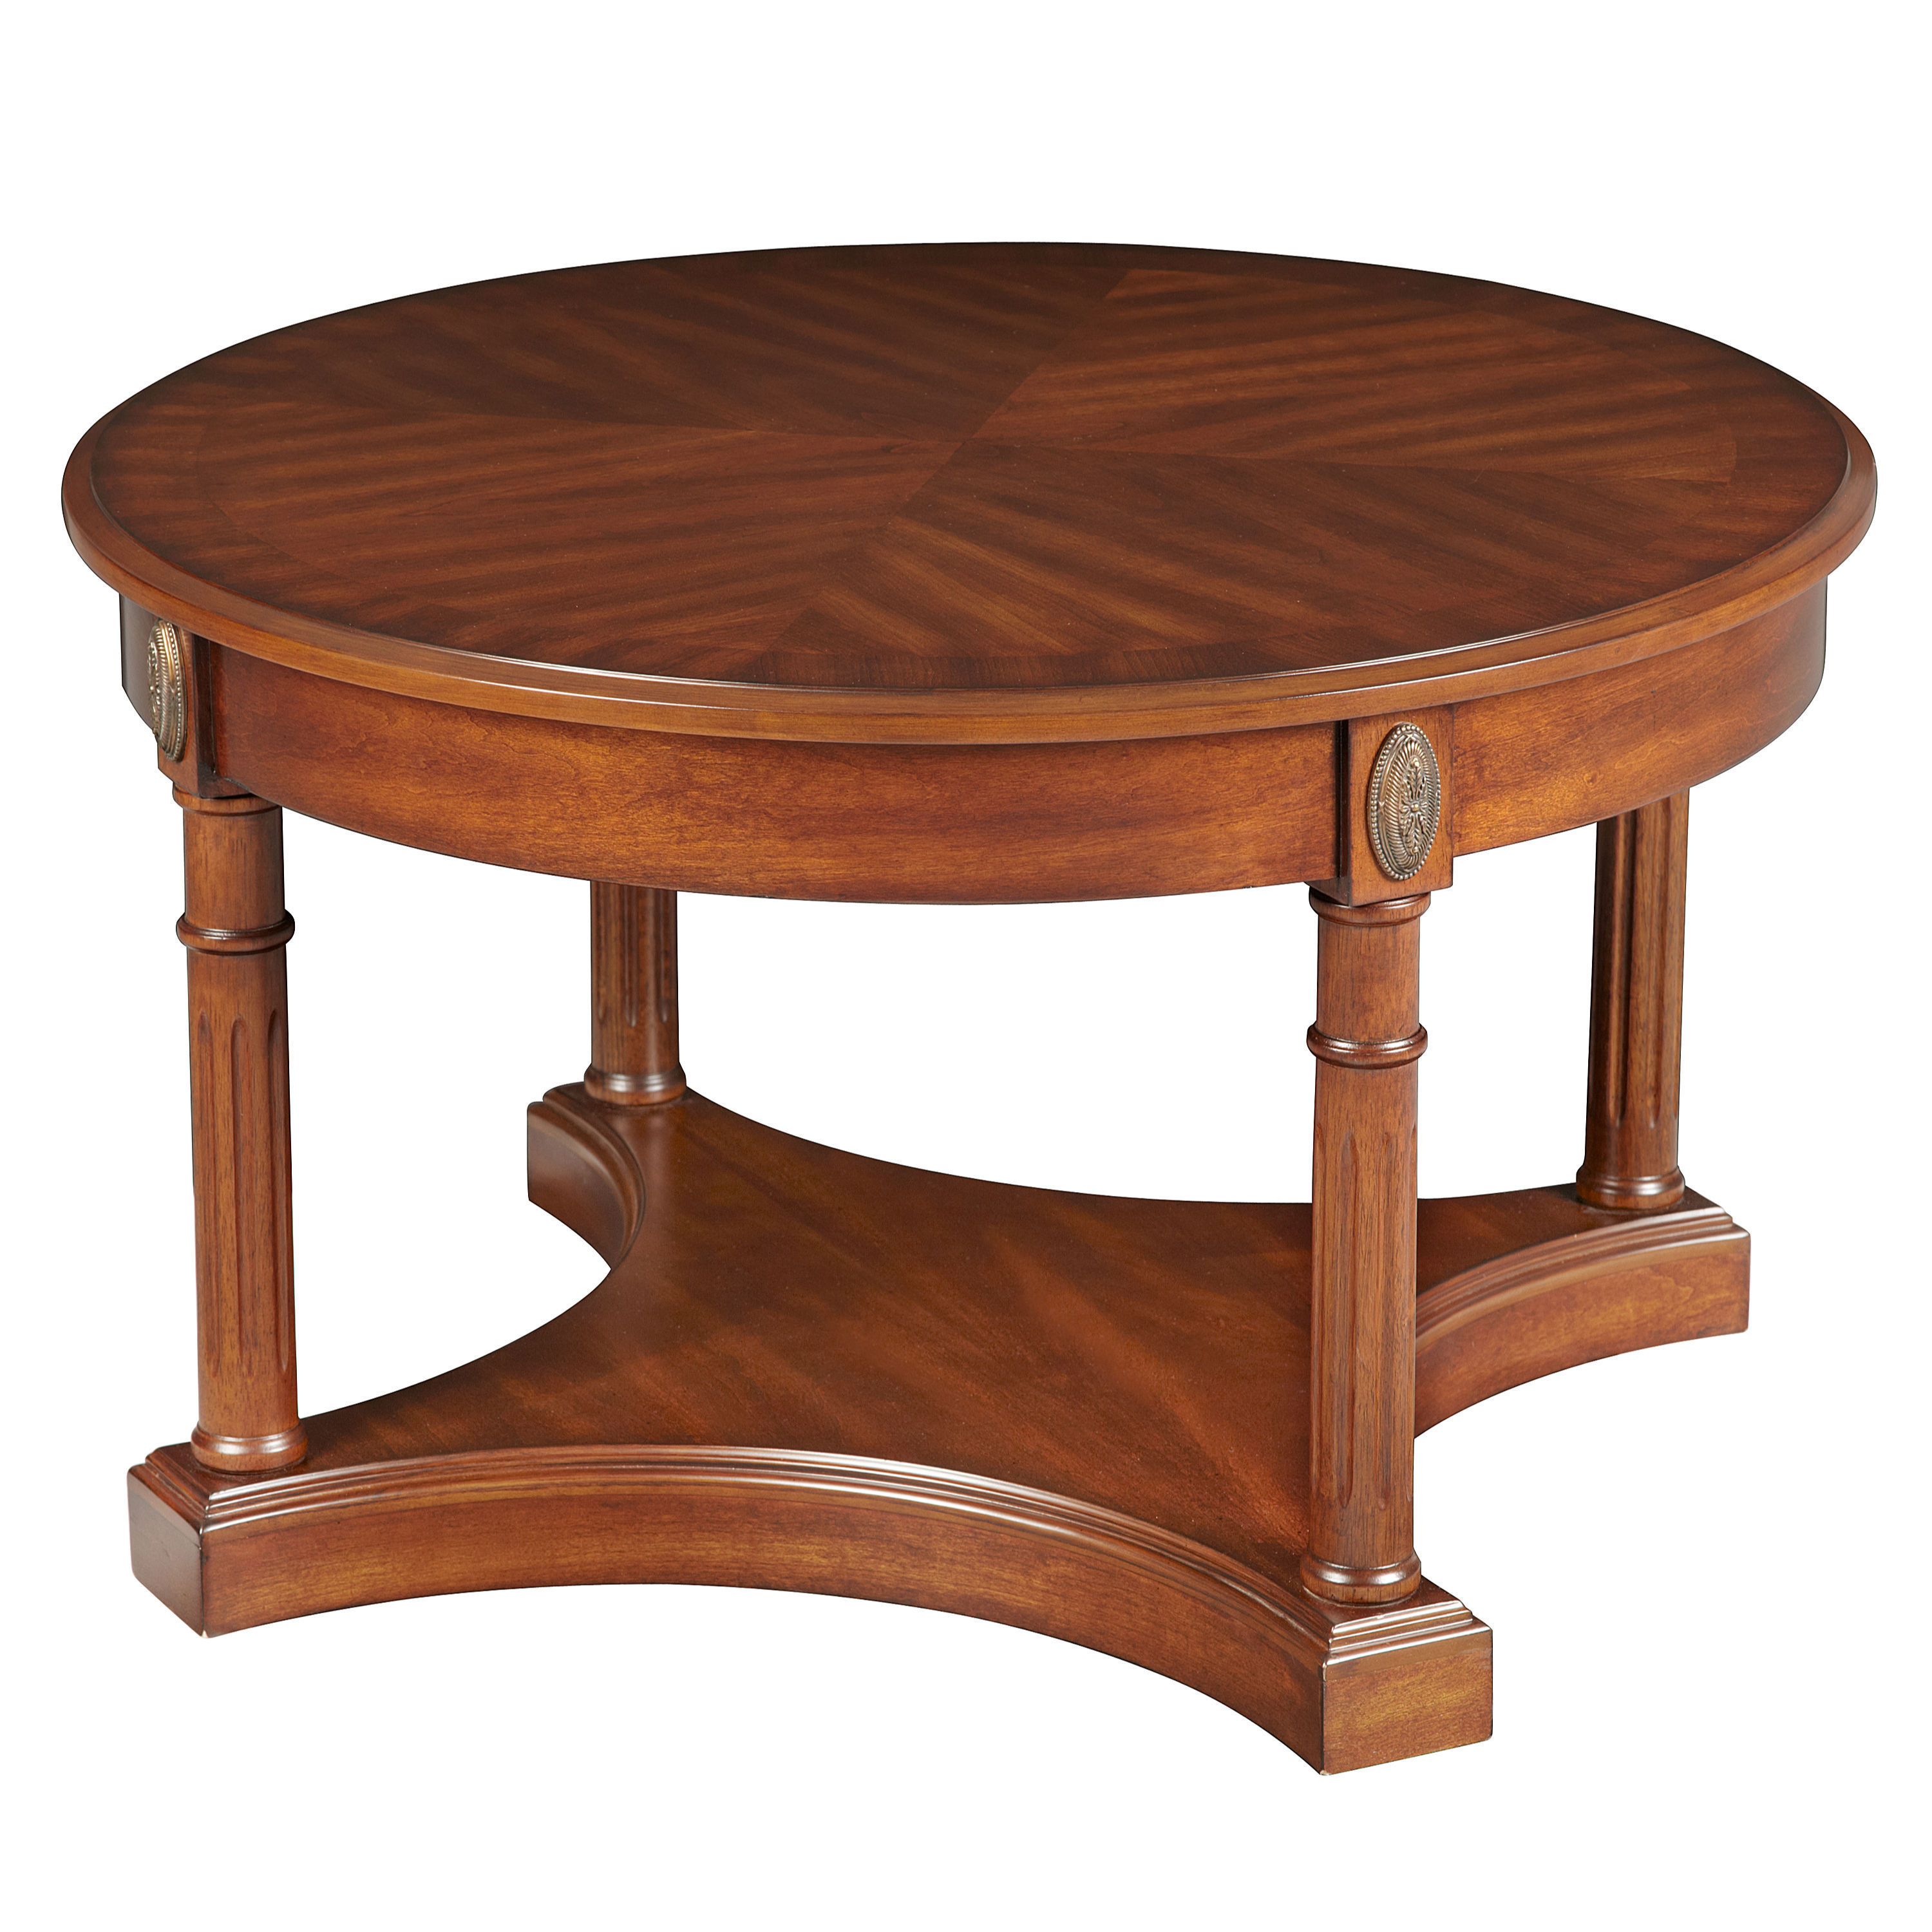 Bombay Outlet Athena Coffee Table - Antique Cherry